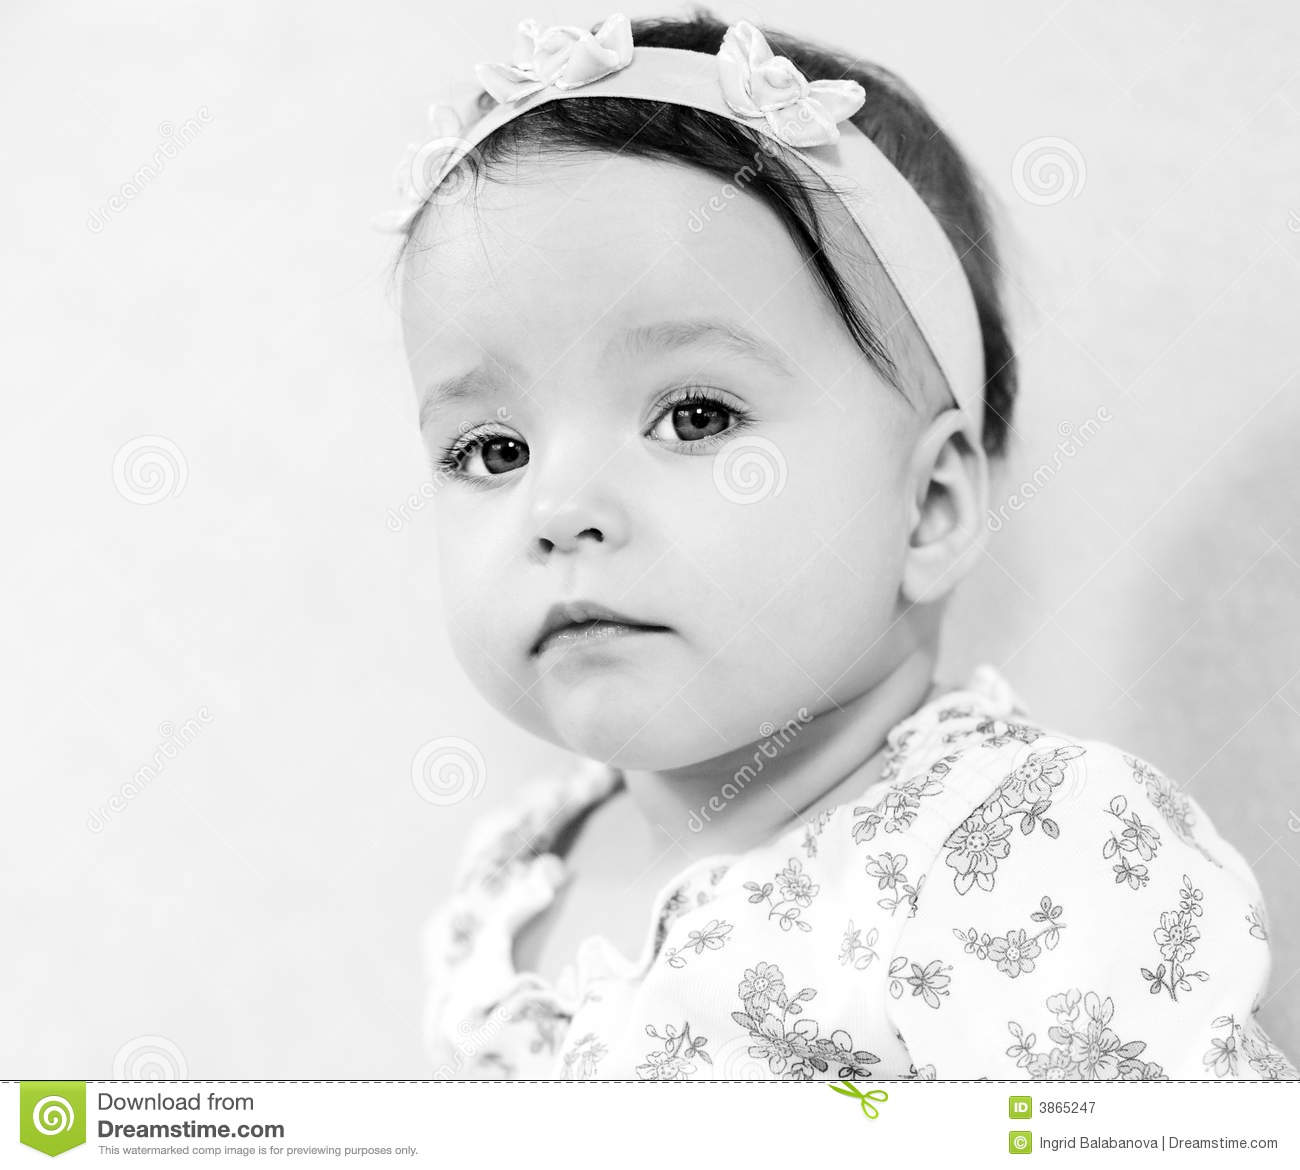 portrait of cute baby - photo #22